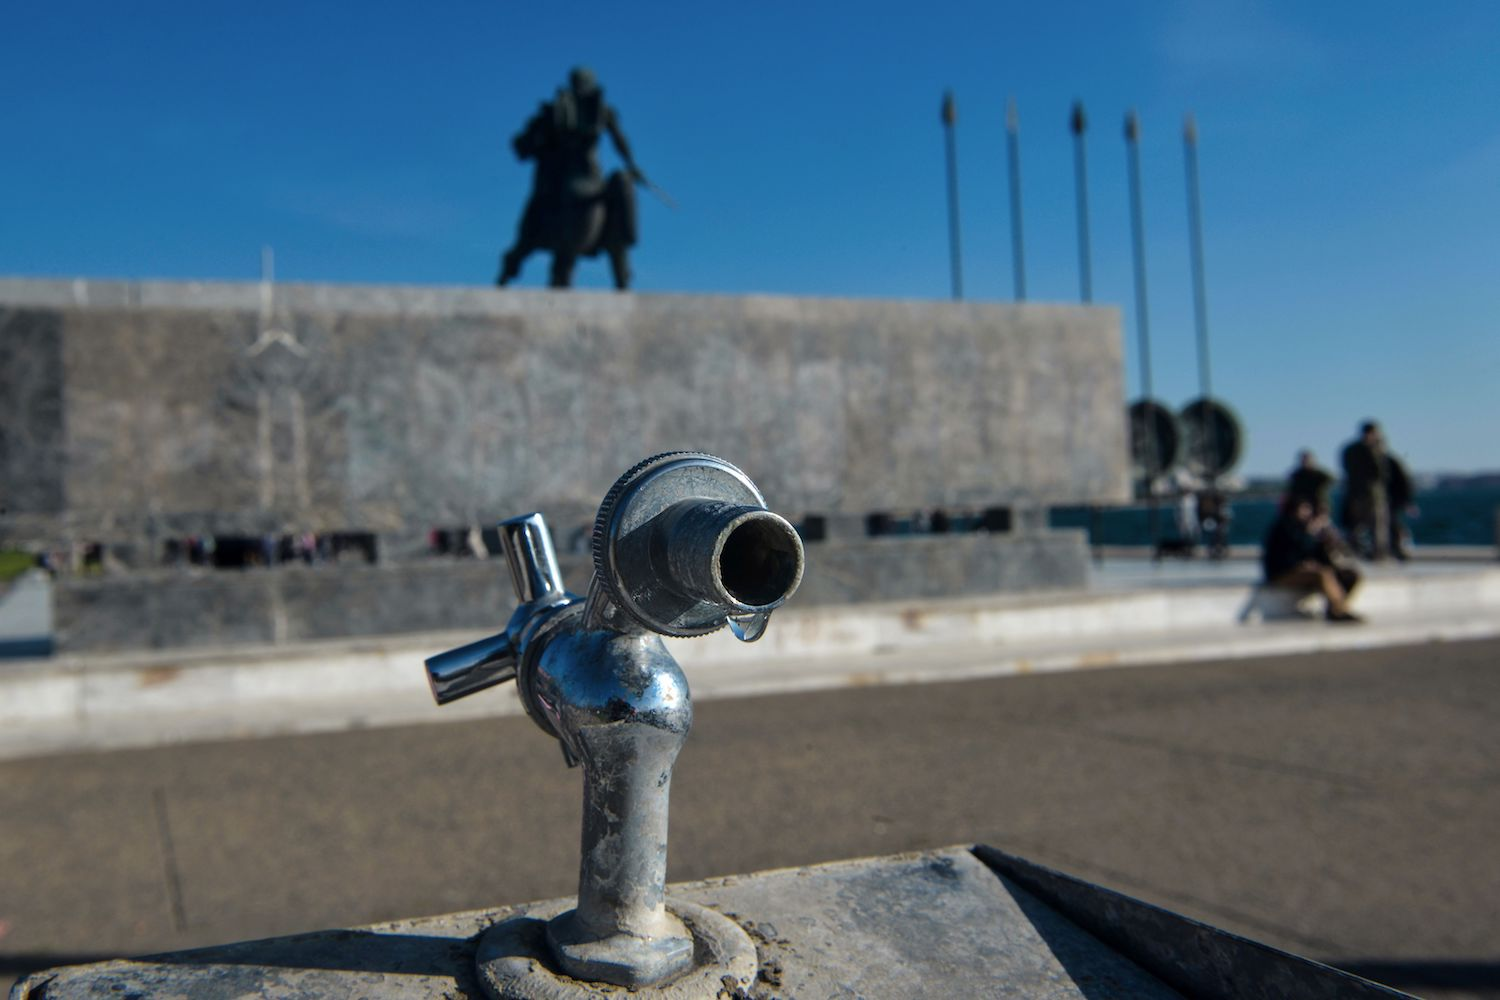 A dripping tap is pictured next to a statue of Alexander the Great on the 3rd day in a row without water in Thessaloniki on March 29, 2018. More than 40 percent households and businesses in Greece's second largest city have been without tap water, due to damage in the main water pipeline.  / AFP PHOTO / SAKIS MITROLIDIS        (Photo credit should read SAKIS MITROLIDIS/AFP/Getty Images)